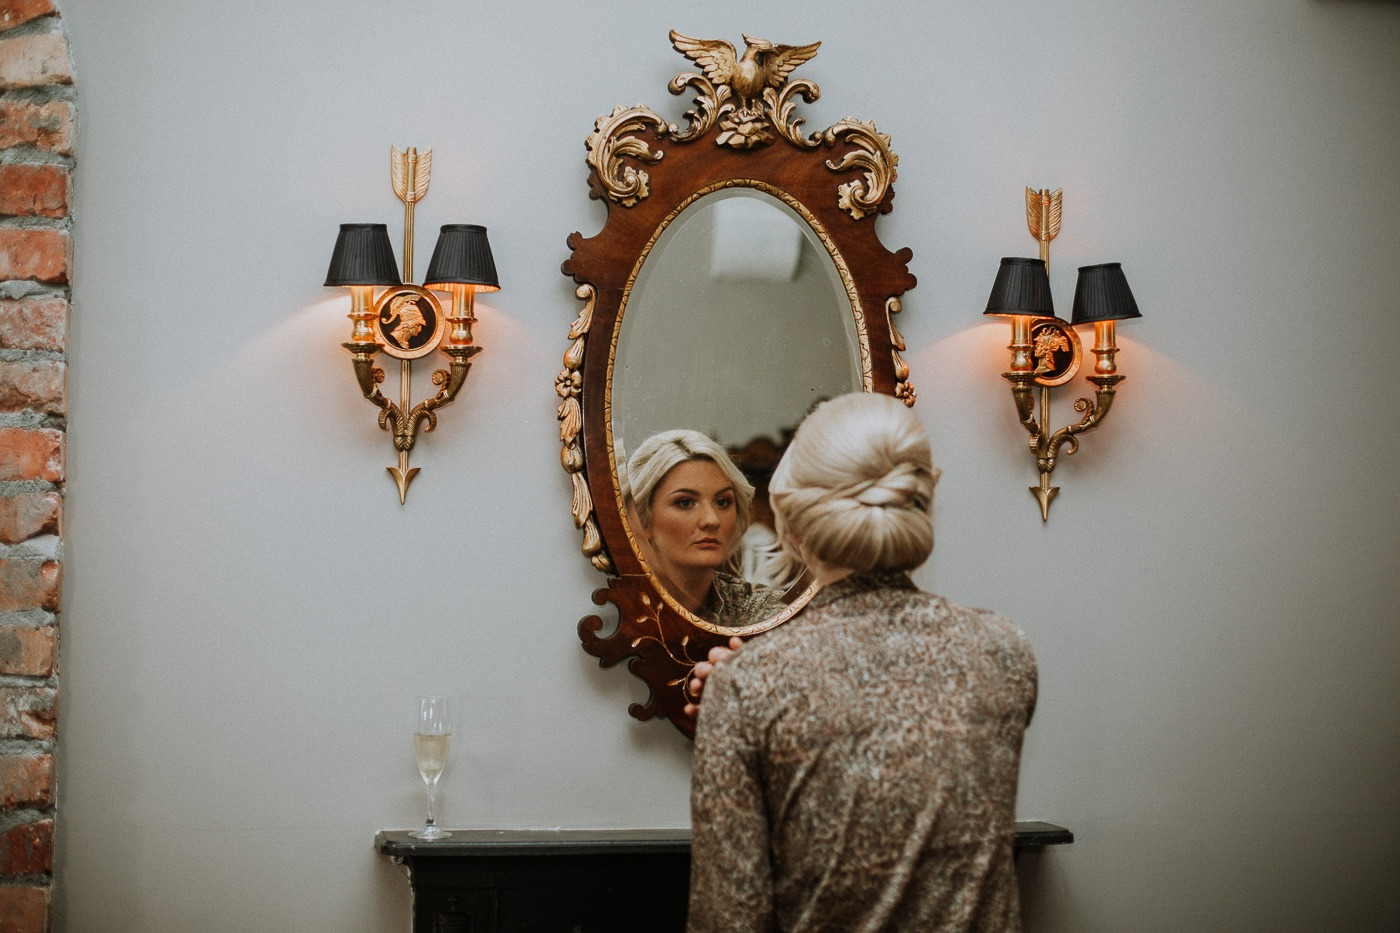 A statue in front of a mirror posing for the camera